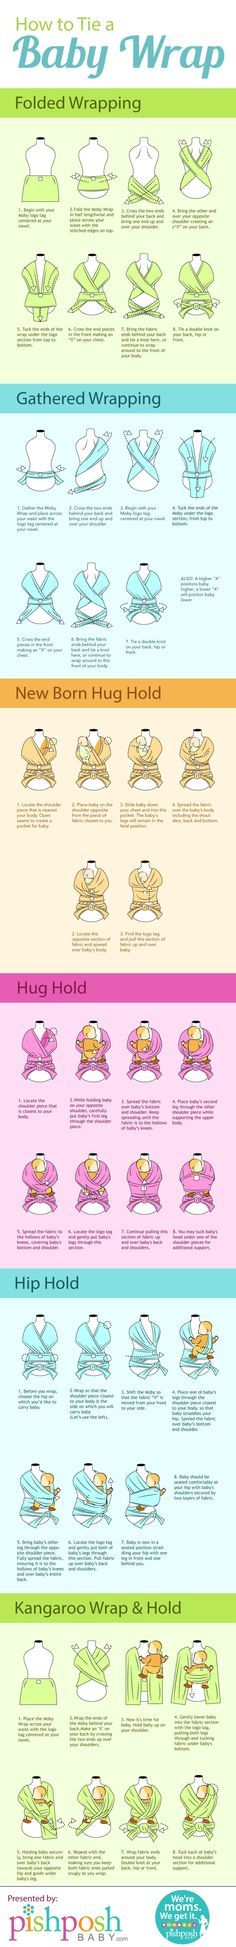 Discover new TIPS! Published by: PishPoshBaby.com. Original source: here TIPS FOR: toddlers, newborn, newborns, parenting, baby, babies, baby wrap, baby wrap carrier, baby wrap sling, baby wrap sizes, baby wrap blanket, baby wrap how to, baby wrap cloth, baby wrap pattern, baby wrap diy, baby wraps.